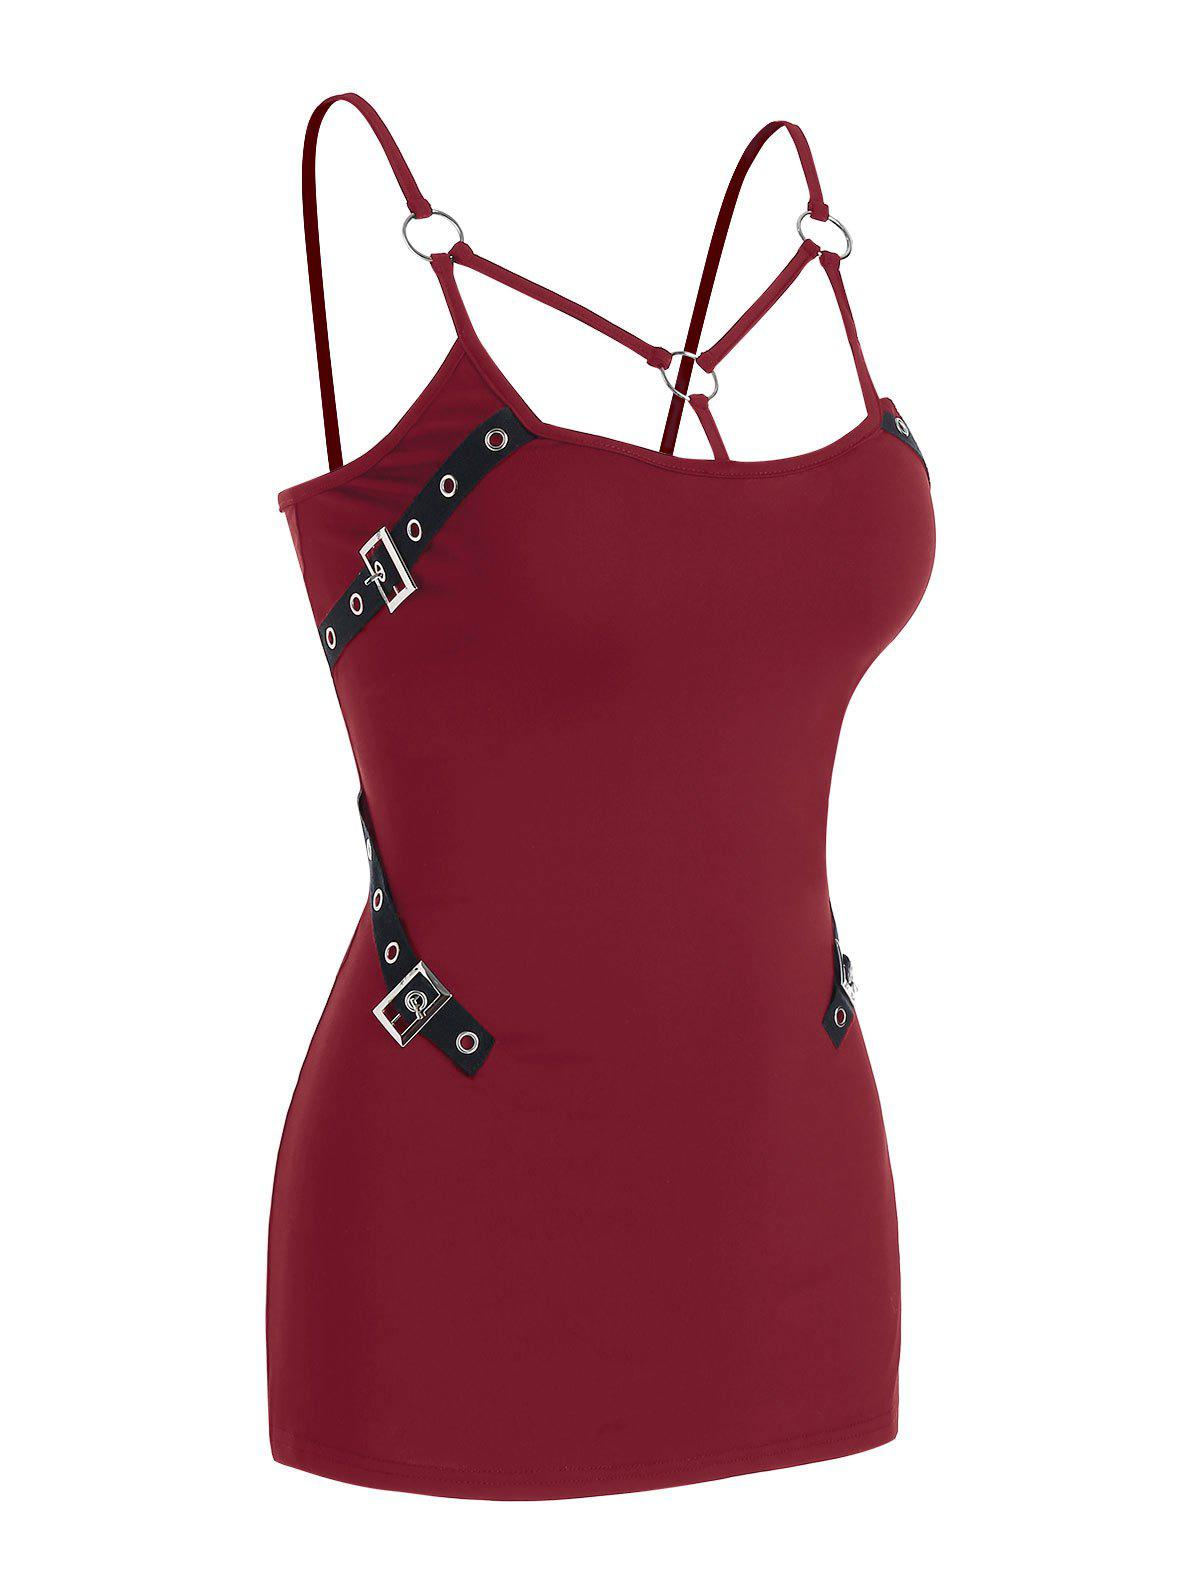 Buckle Strap O-ring Strappy Cami Top - RED WINE S